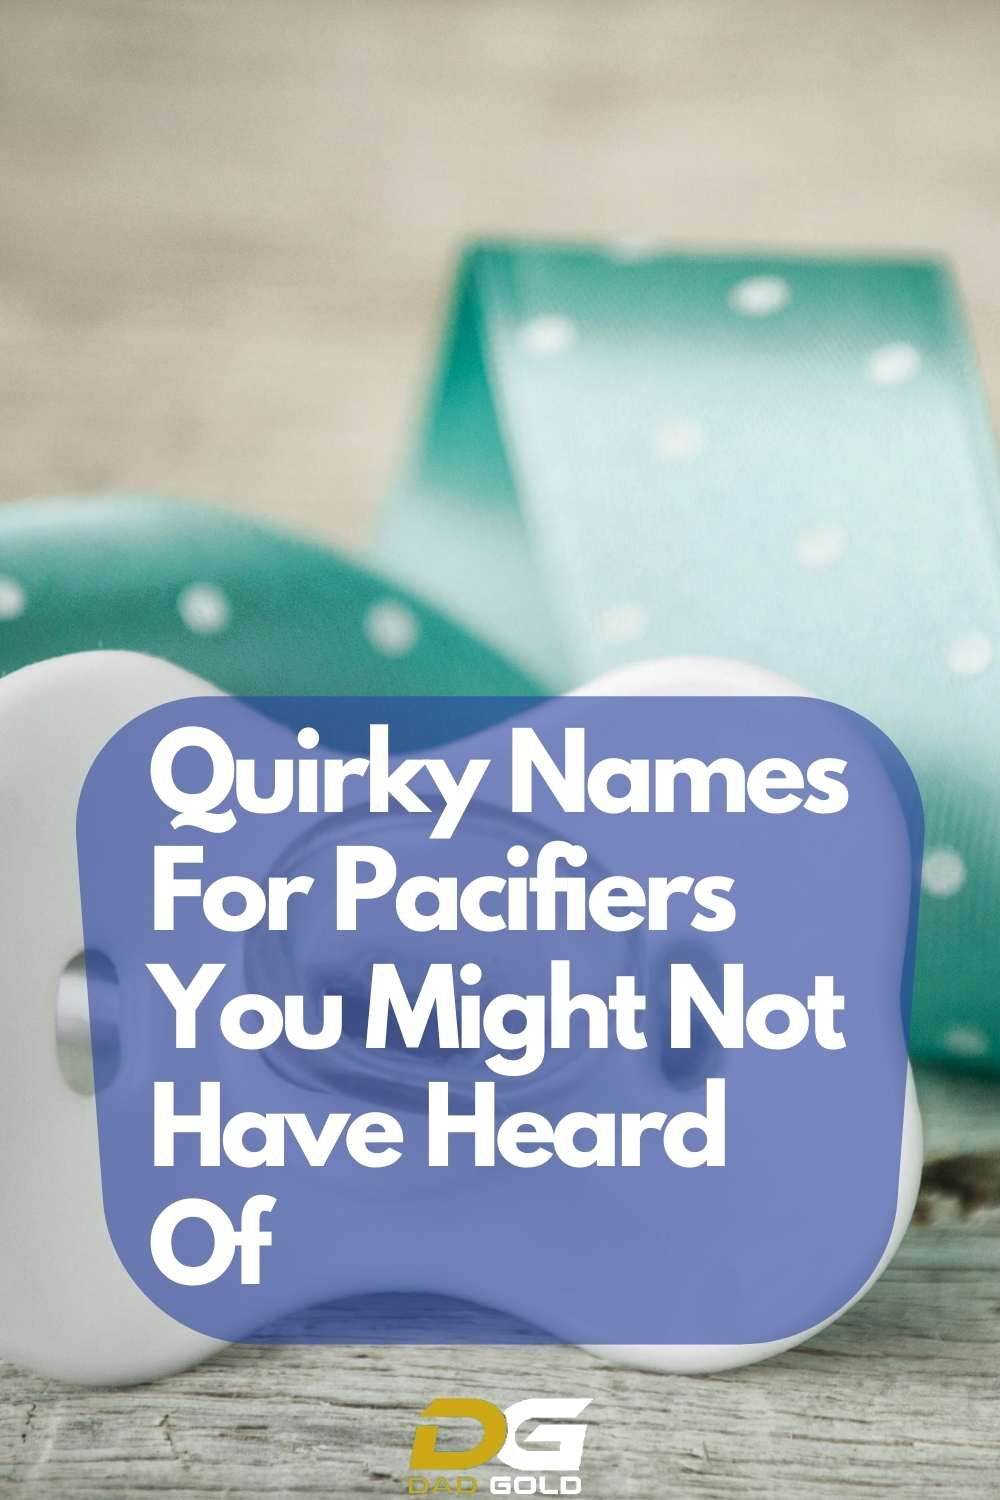 Quirky Names for Pacifiers You Might Not Have Heard Of